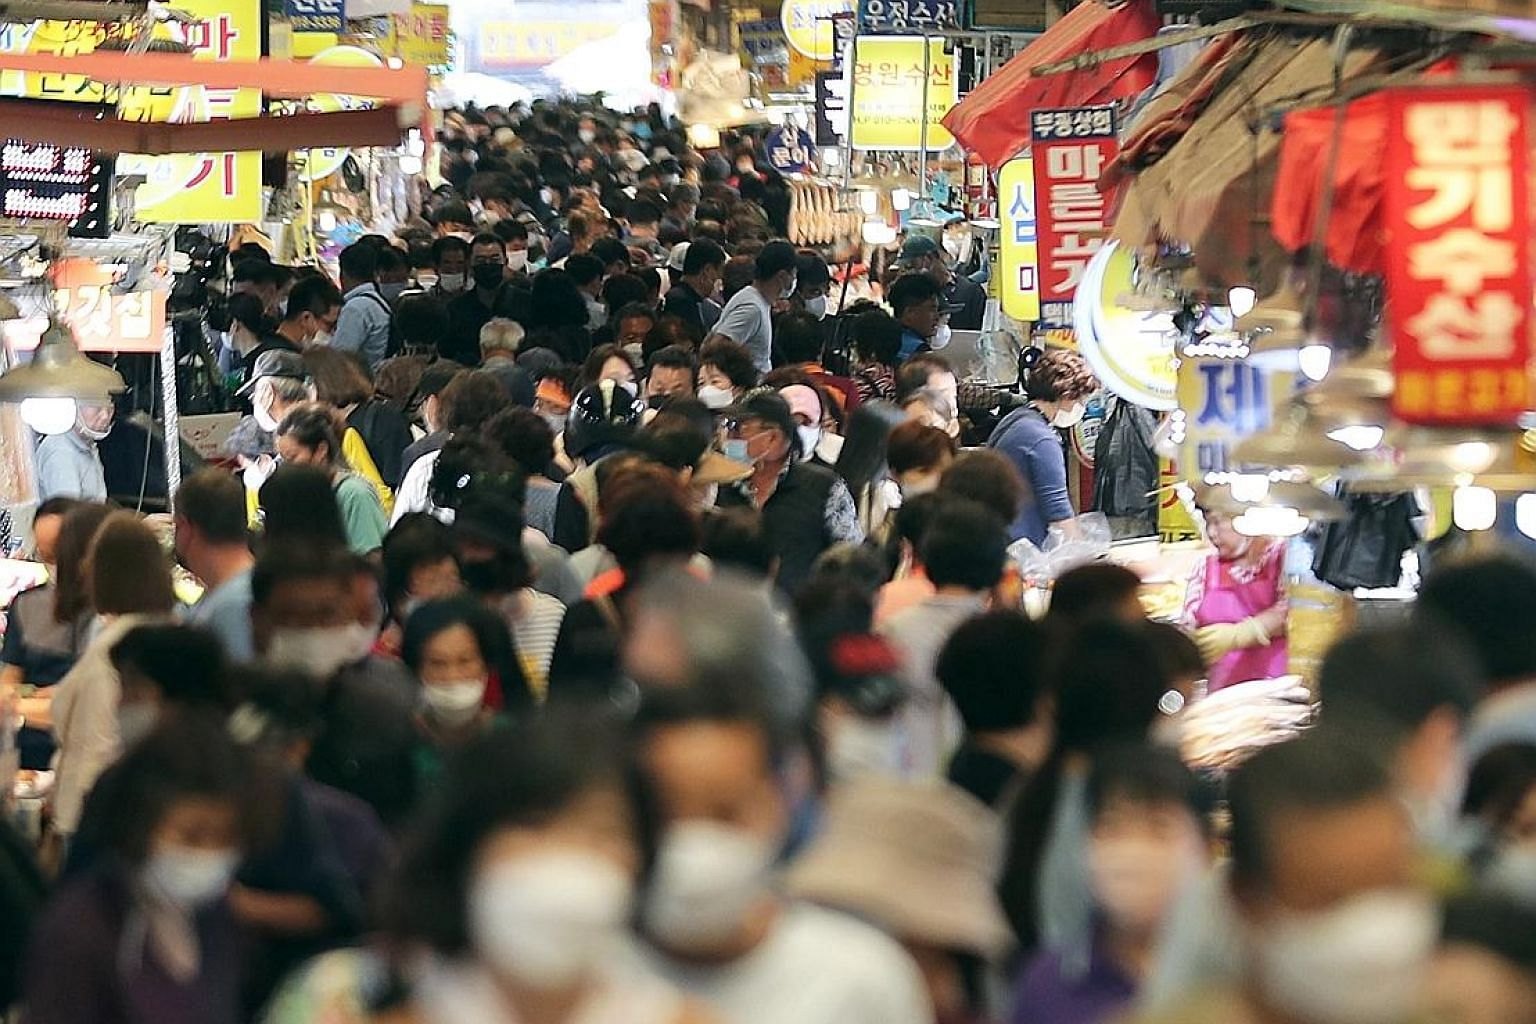 A crowded marketplace in Busan, South Korea, yesterday, ahead of the Chuseok holiday which takes place from Sept 30 to Oct 2. Social distancing policies for the holiday will be announced in the coming days as the authorities remain concerned about Co